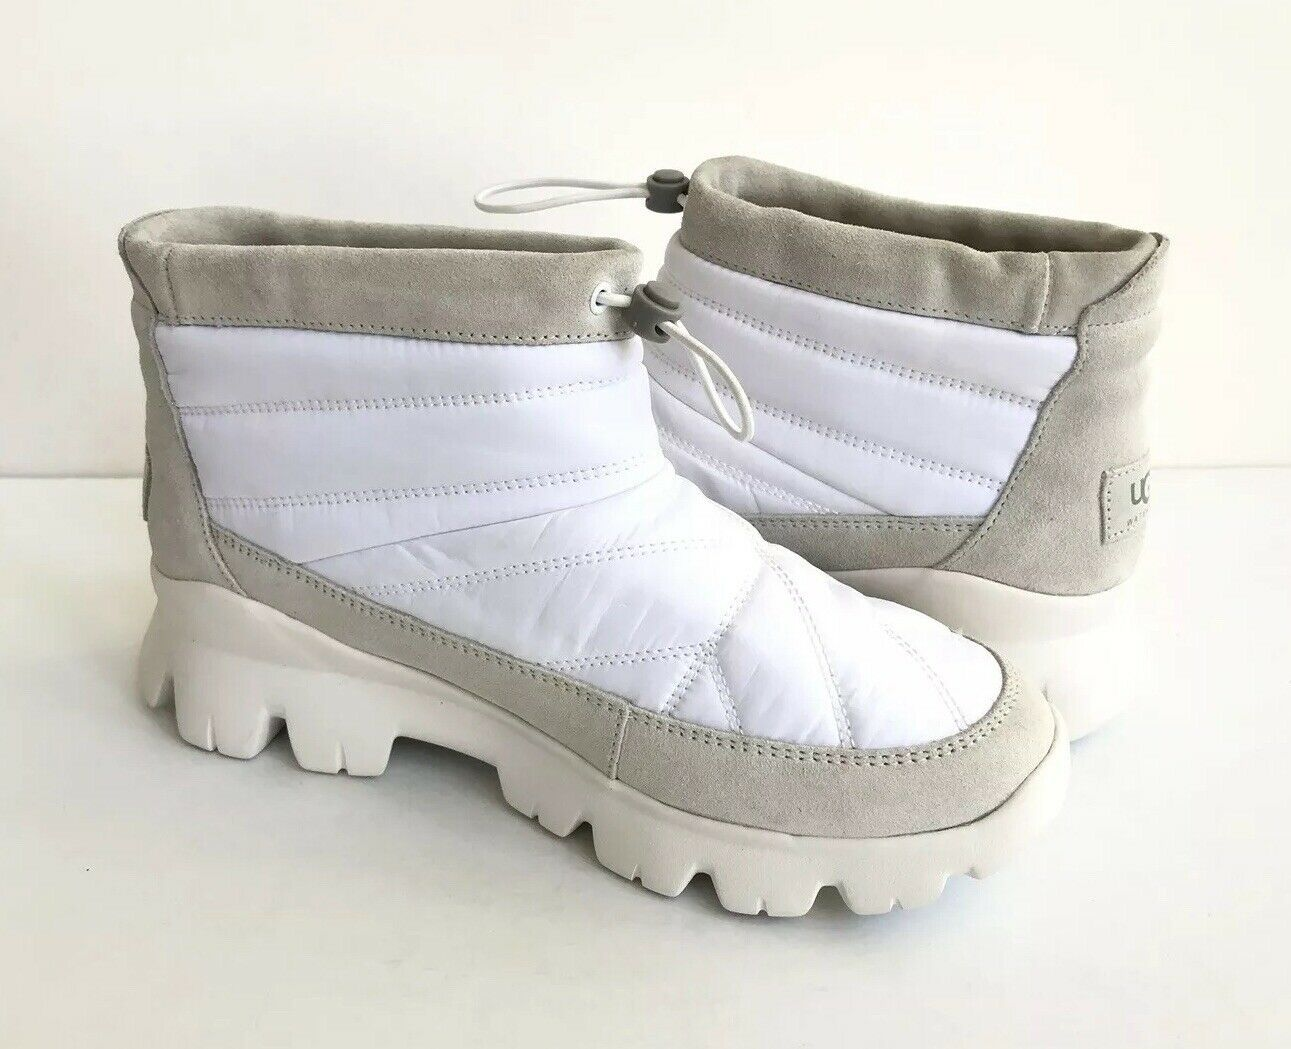 UGG CENTARA WHITE WATERPROOF ANKLE QUILTED SNEAKER SHOE US 7.5 / EU 38.5 /UK 5.5 image 2